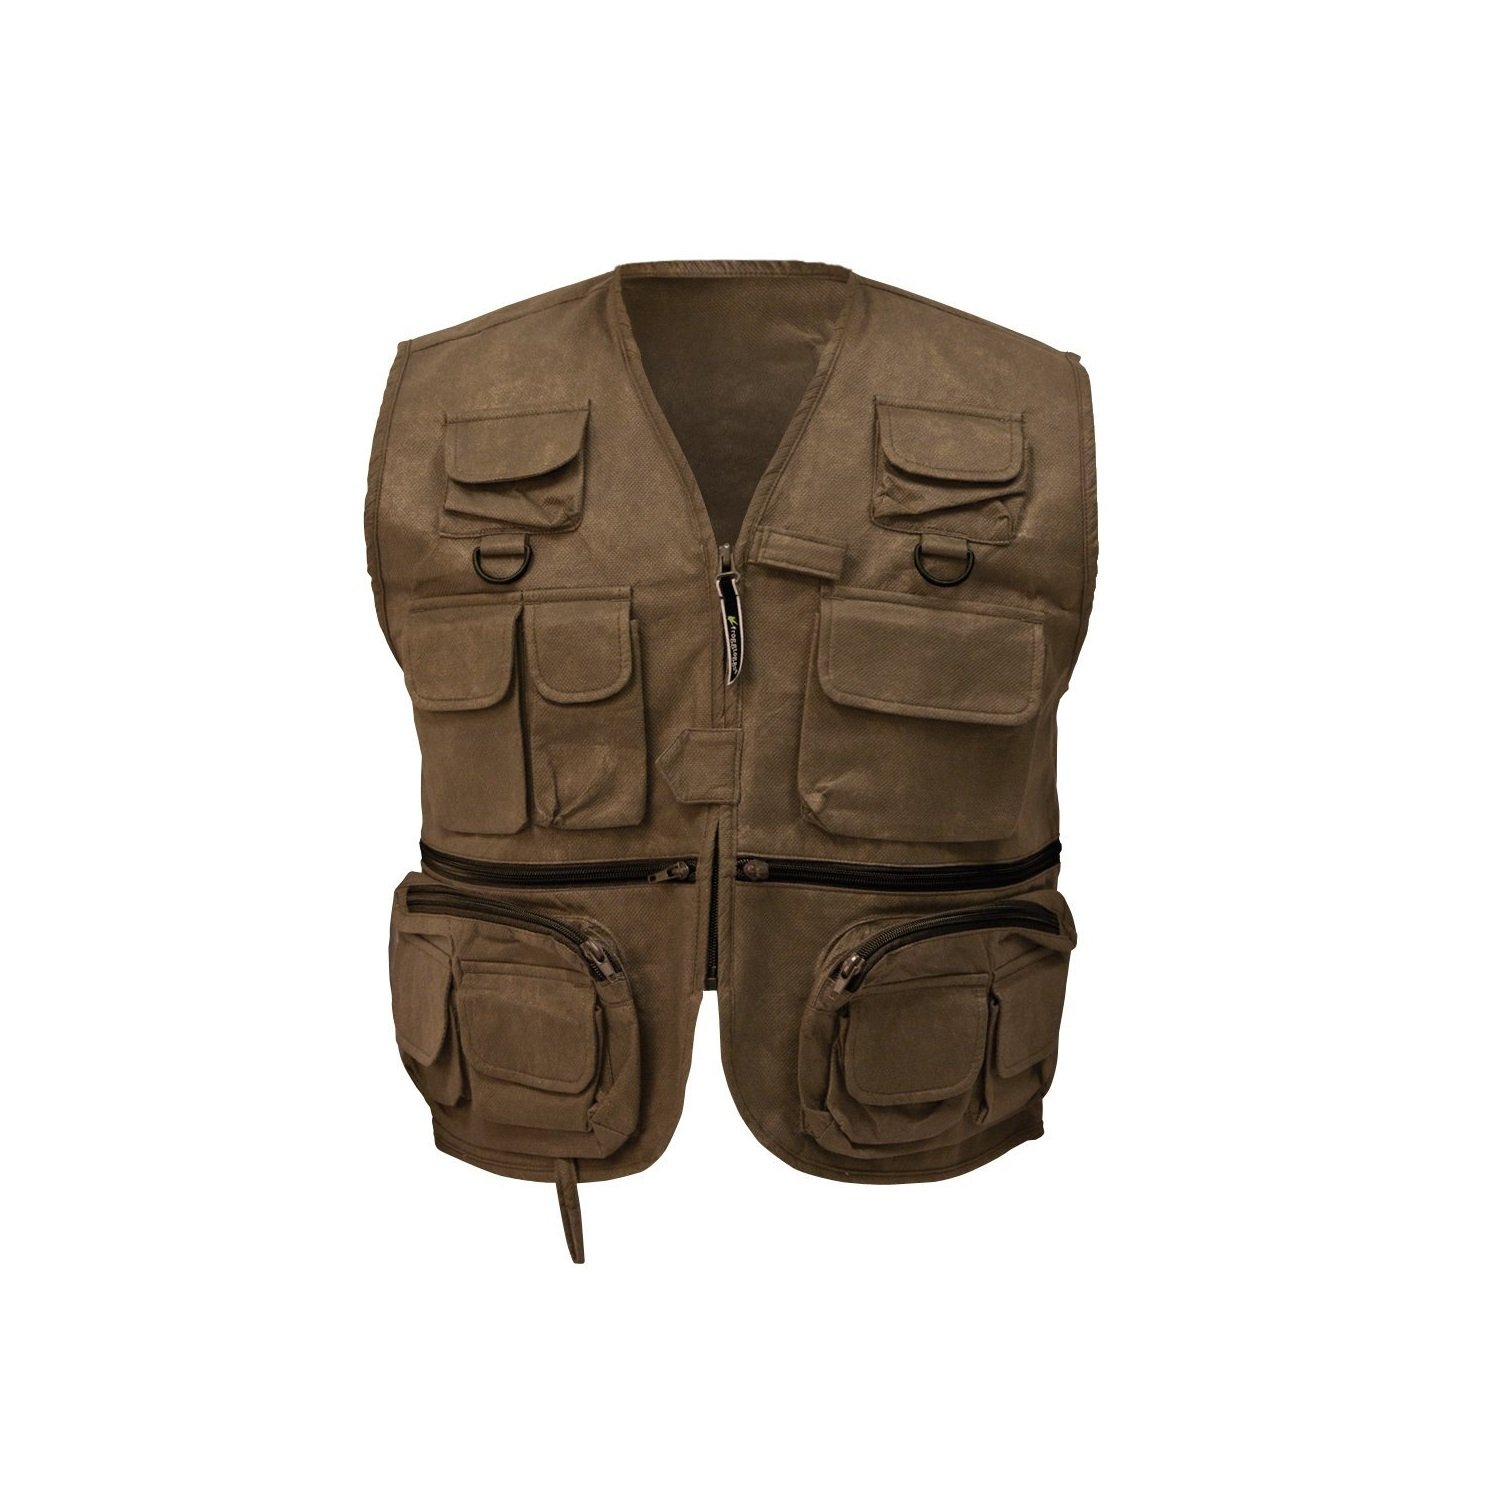 Frogg Toggs Cascades Classic 50 Fishing Vest